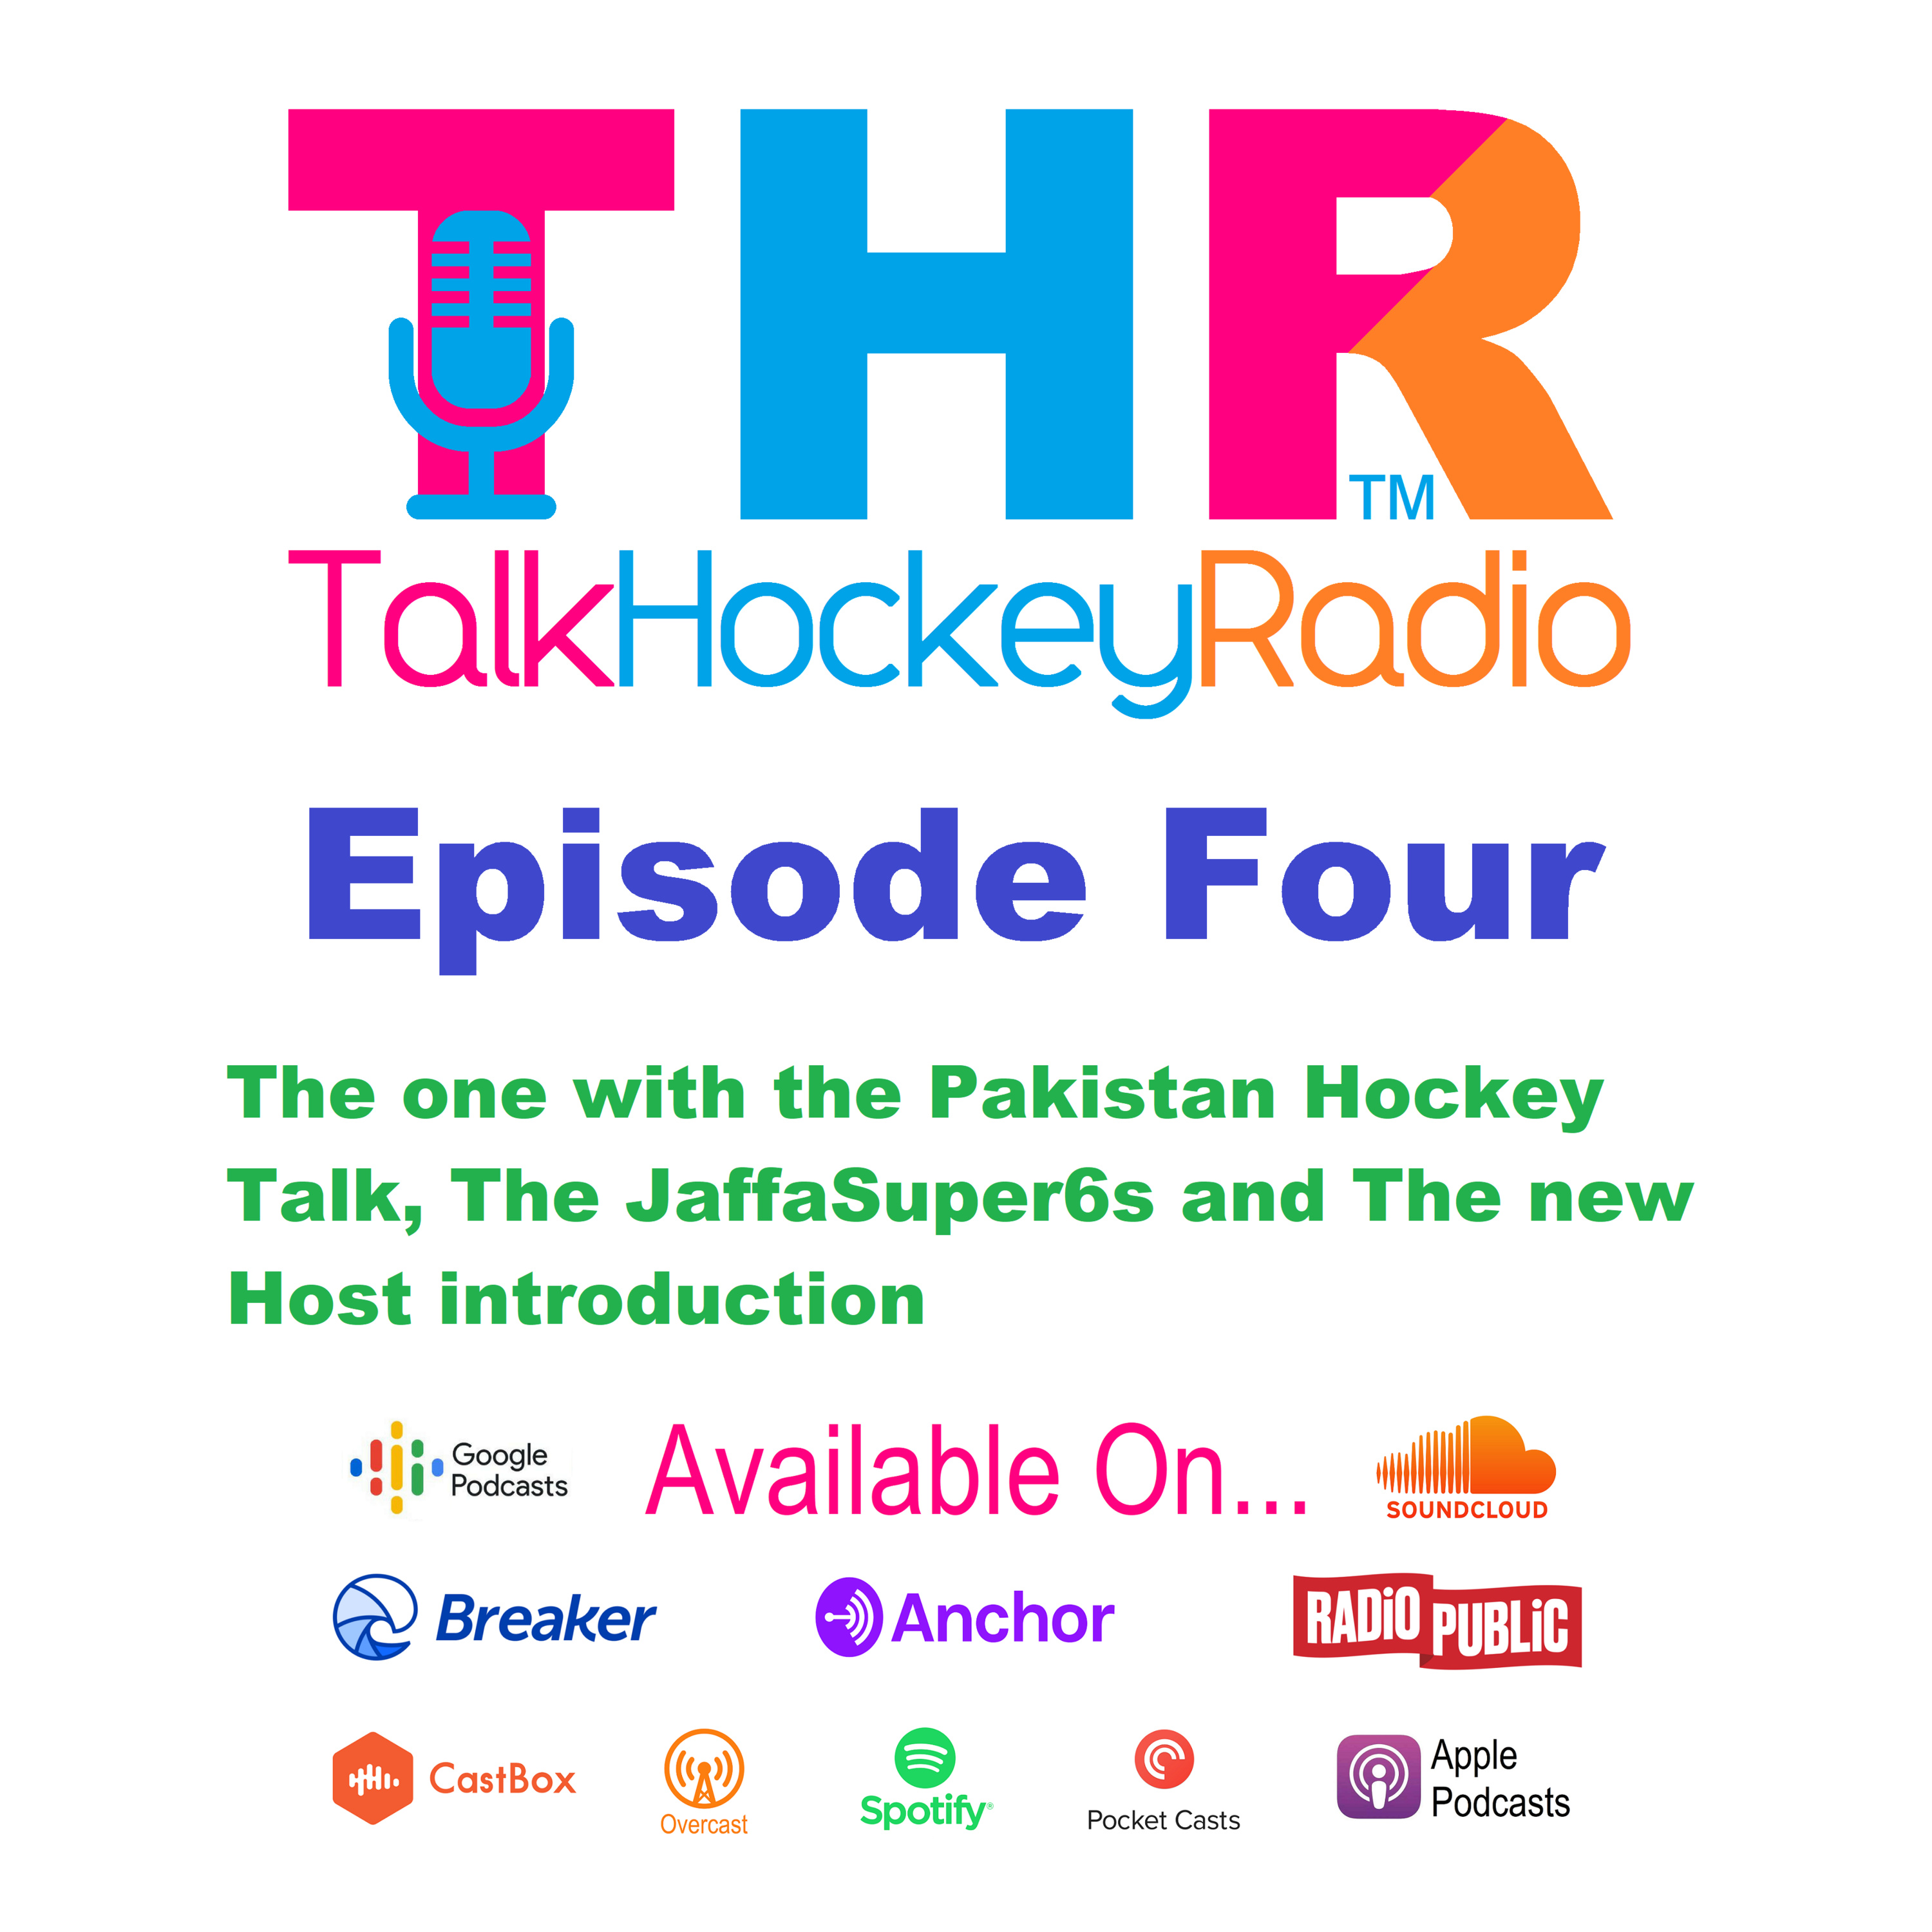 Episode 4 - Talk Hockey Radio - The One with the Pakistan Hockey Talk, The JaffaSuper6s and The New Host Introduction